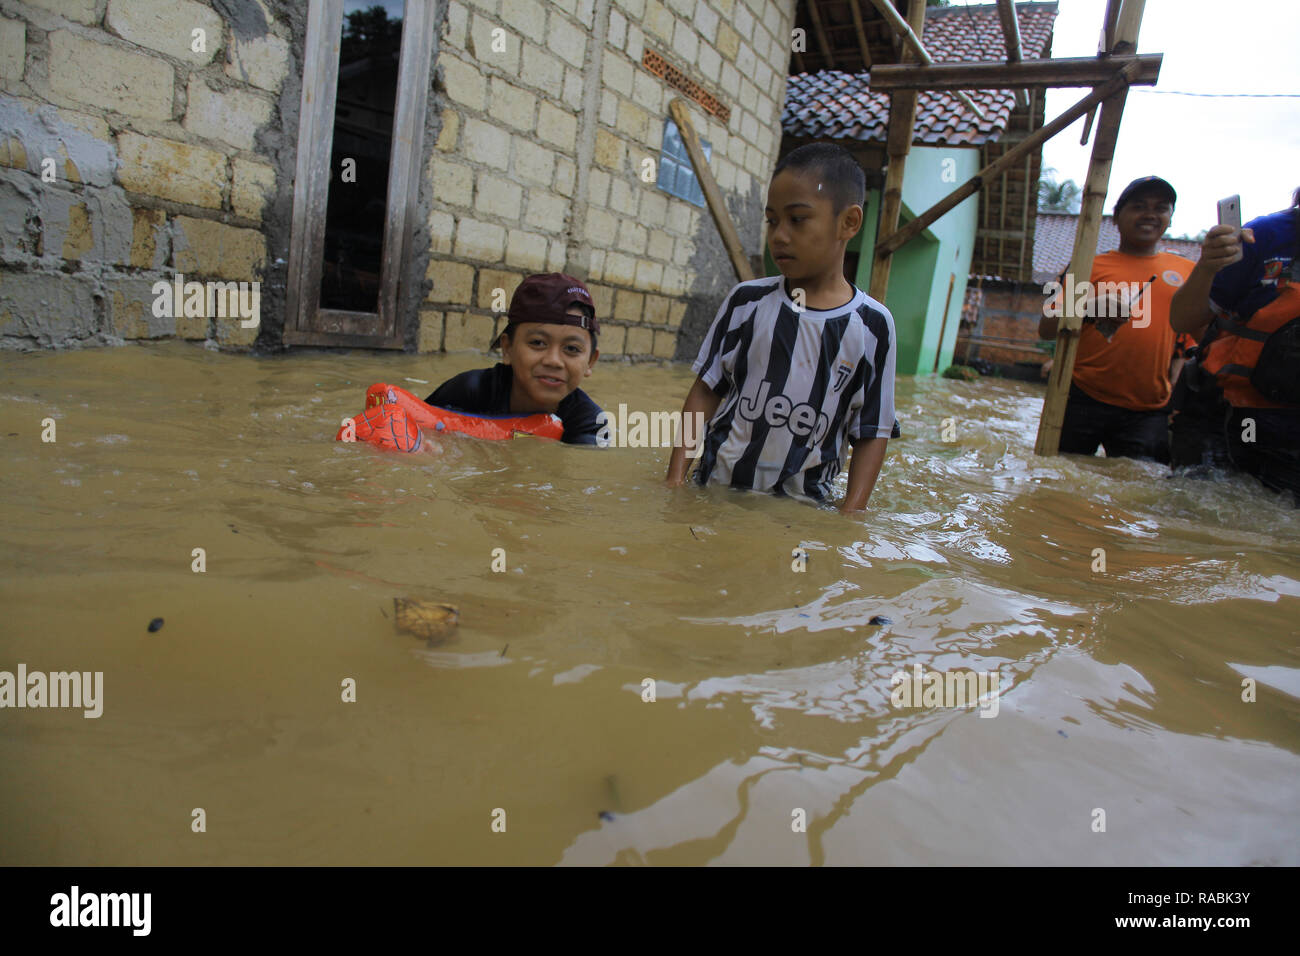 Children are seen playing inside the water during a flood. Dozens of residents were evacuated due to the flood disaster that hit village Rancamaya Cikobak RT 03/04, Rancamaya, Bogor City. This flood began to hit dozens of houses in Kampung Rancamaya Cikobak due to the flow of the Cisadane tributary, the Cimakaci River overflowing. Stock Photo